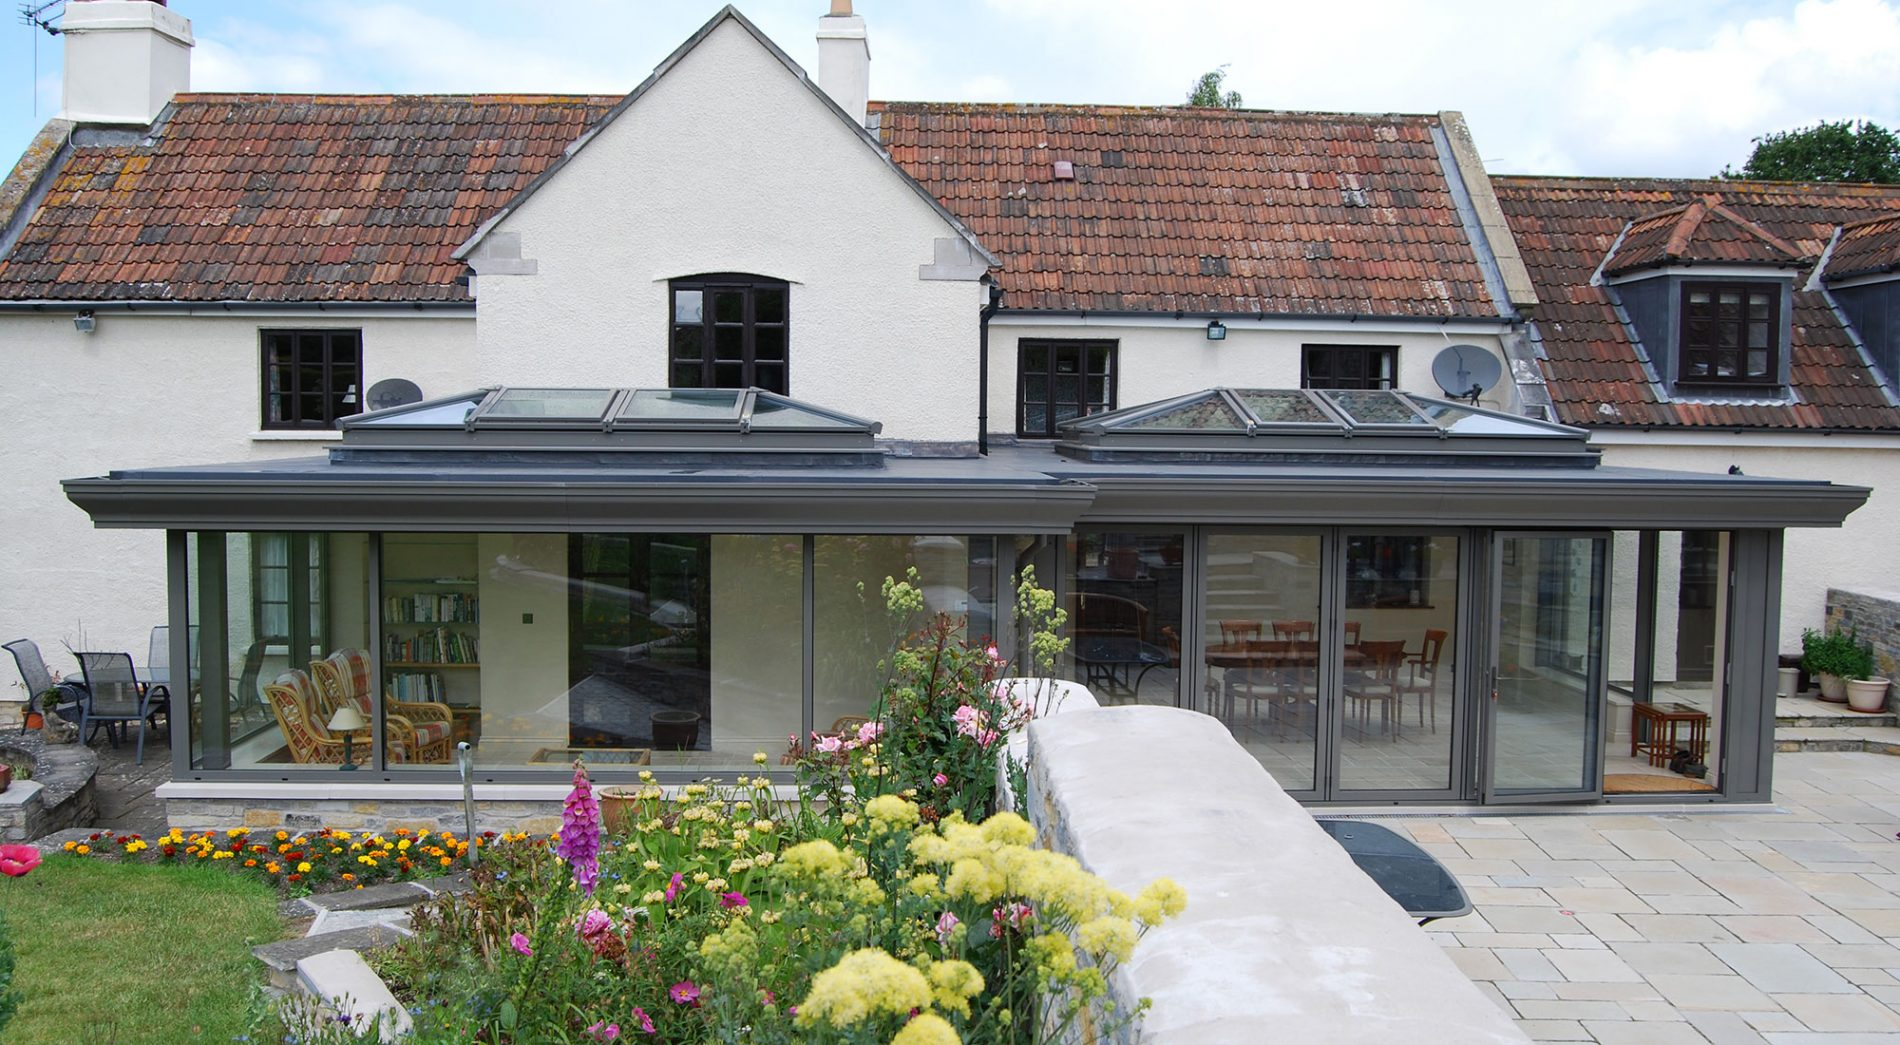 Orangery Extension Image - 1